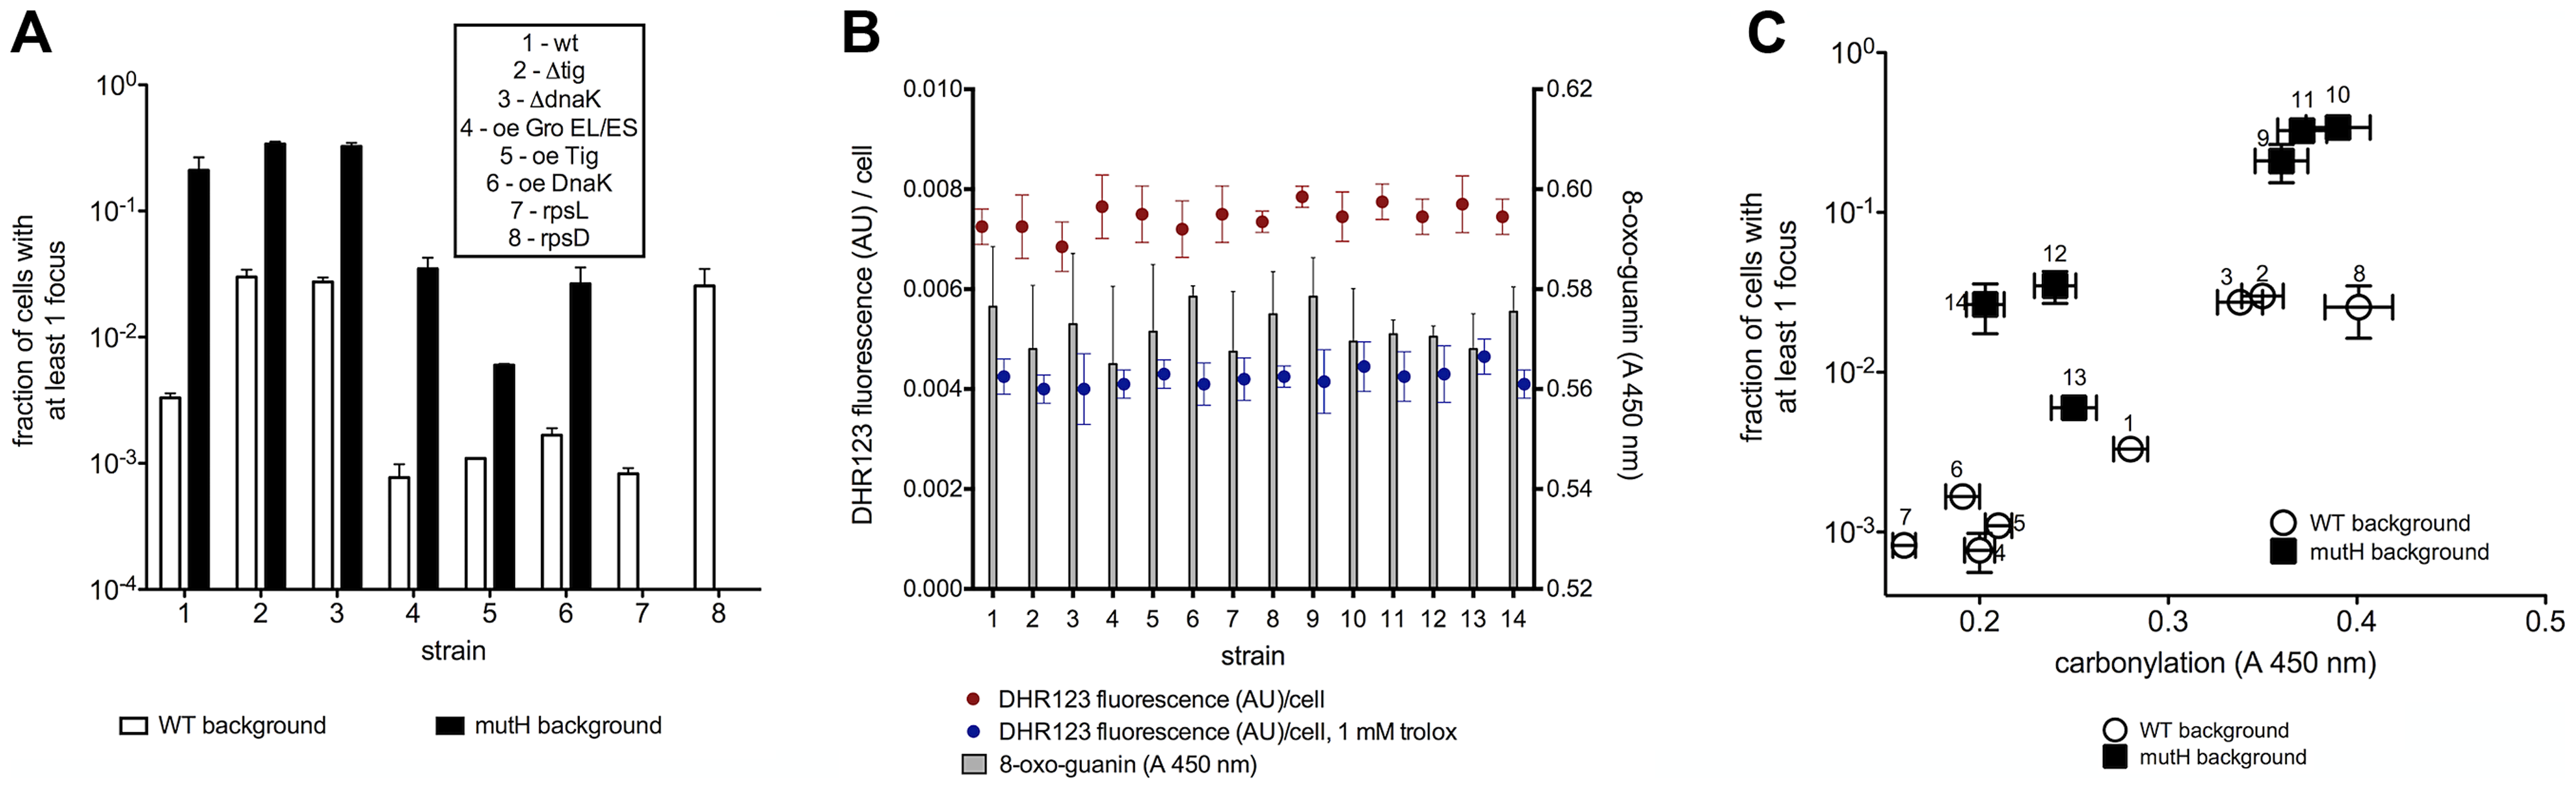 Mutation rate correlates with total proteome carbonylation.